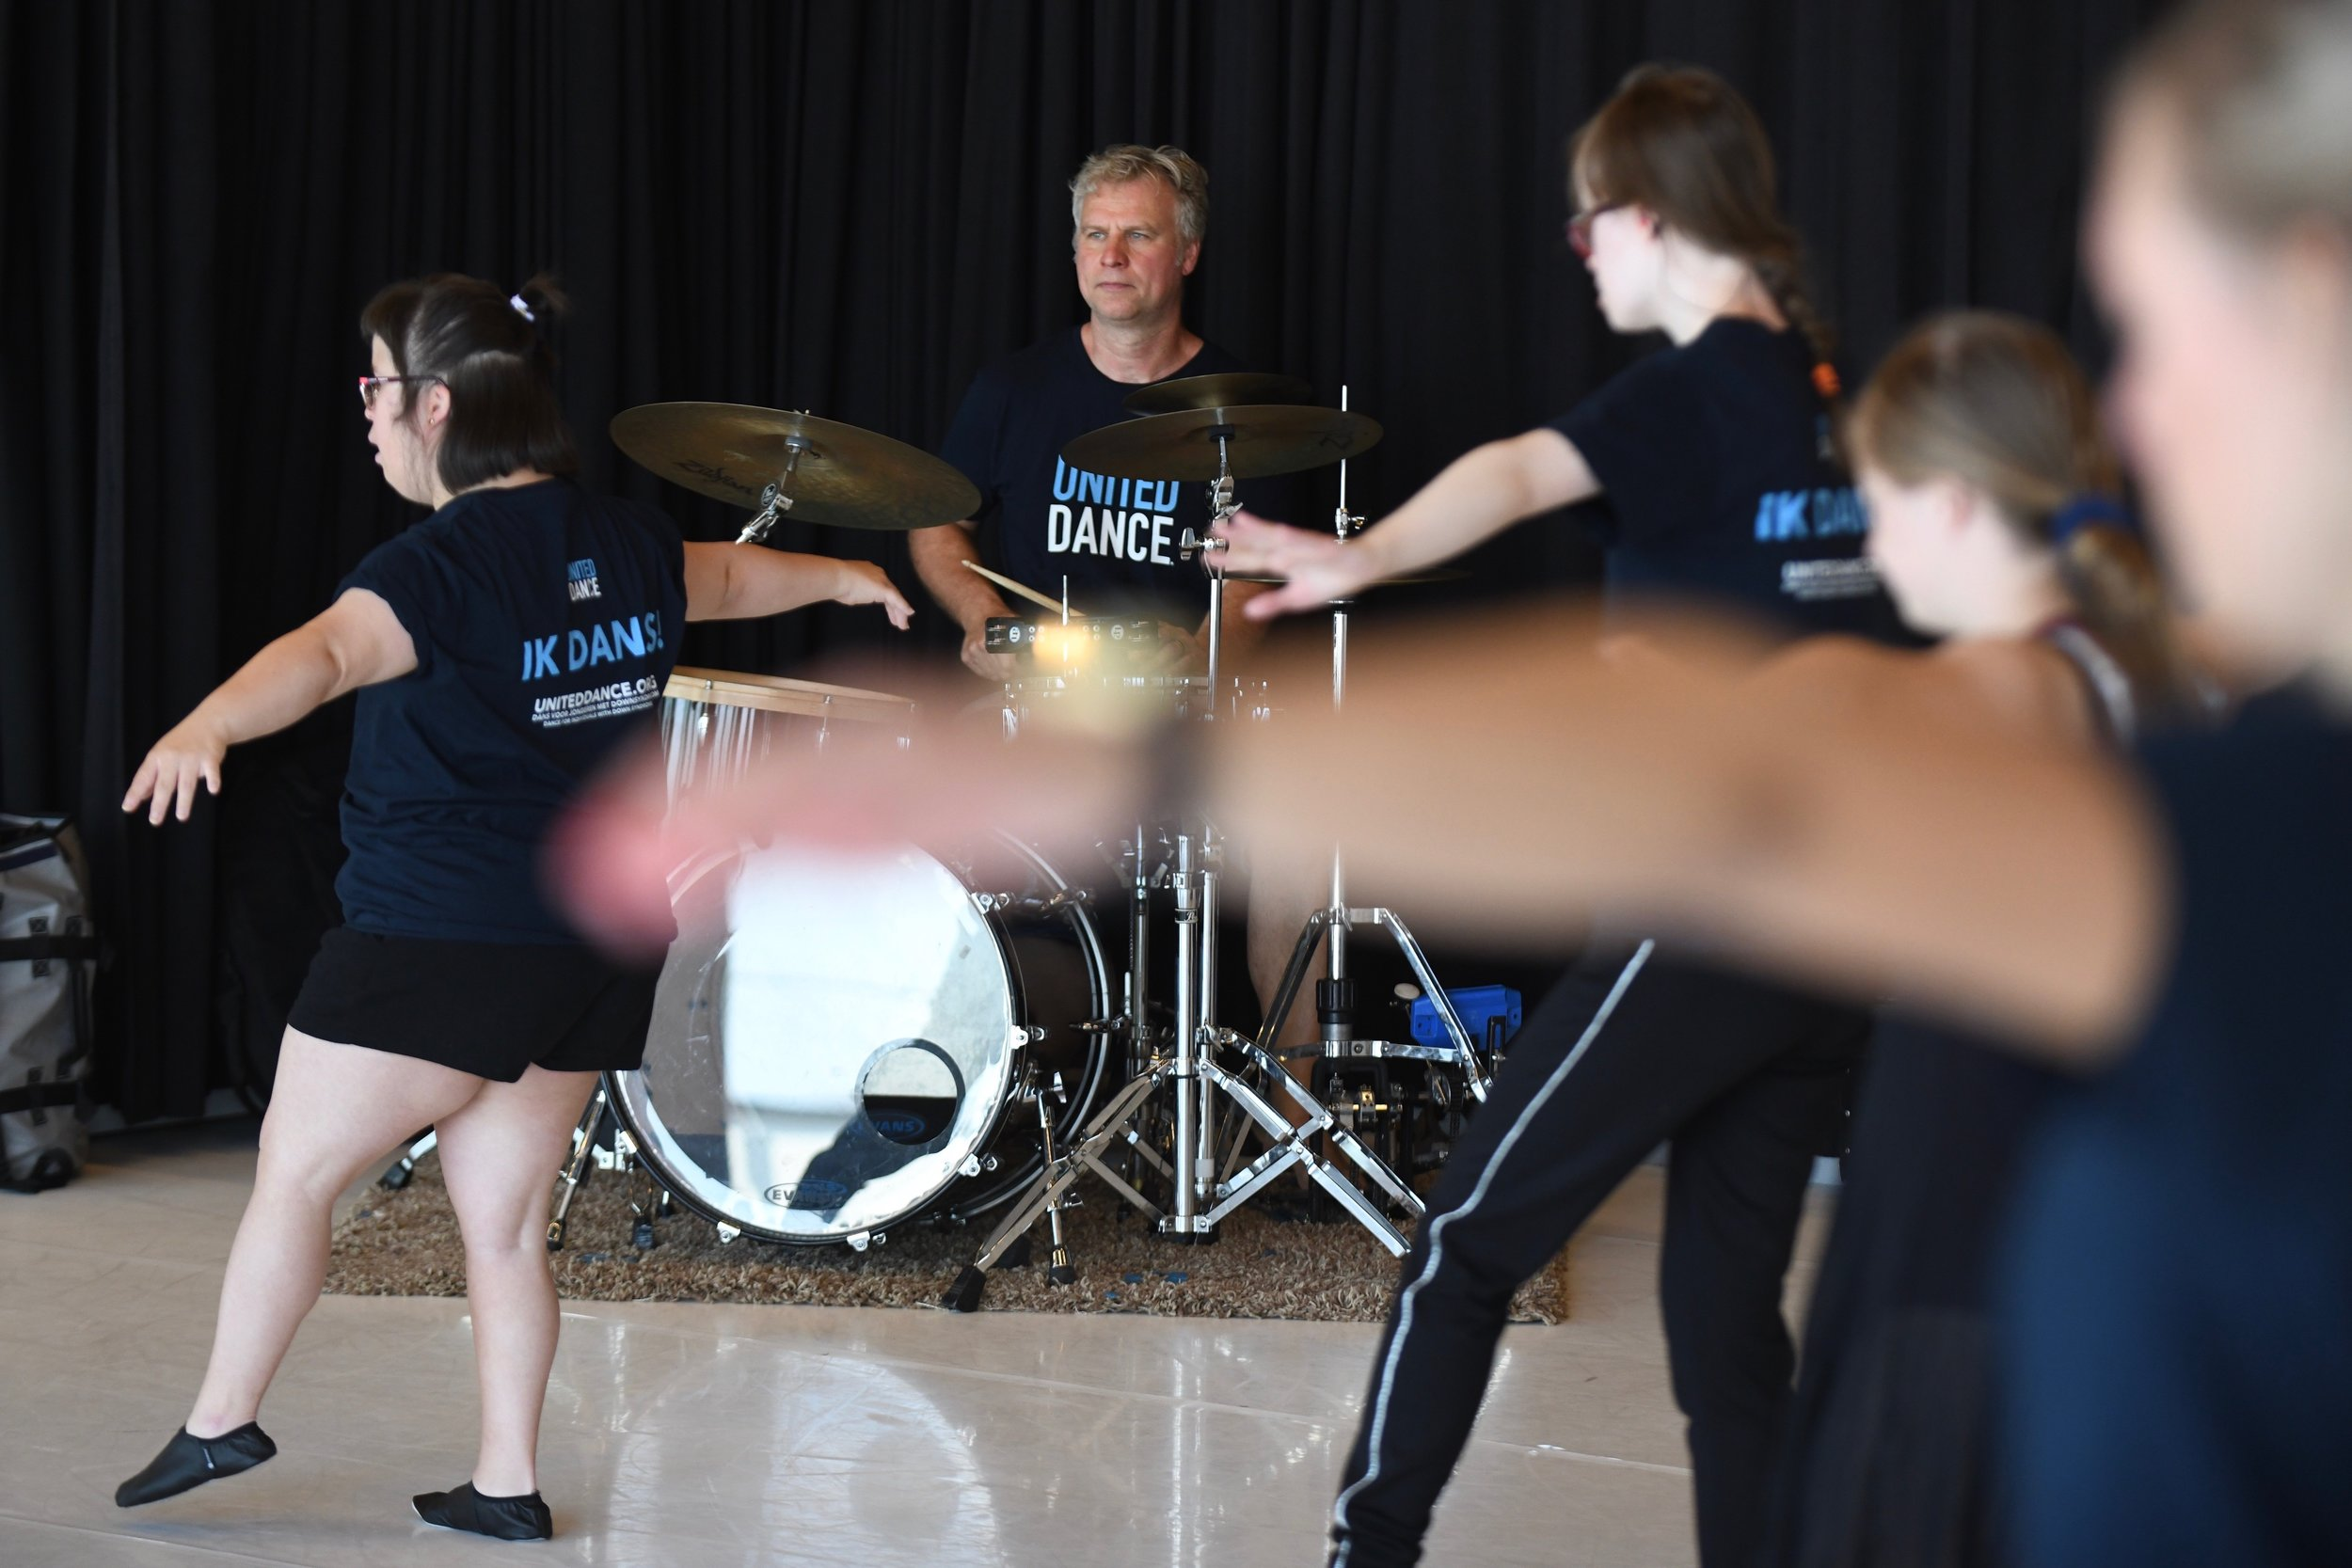 Musician Koen Lieckens playing at the United Dance Summer Course Antwerp 2018